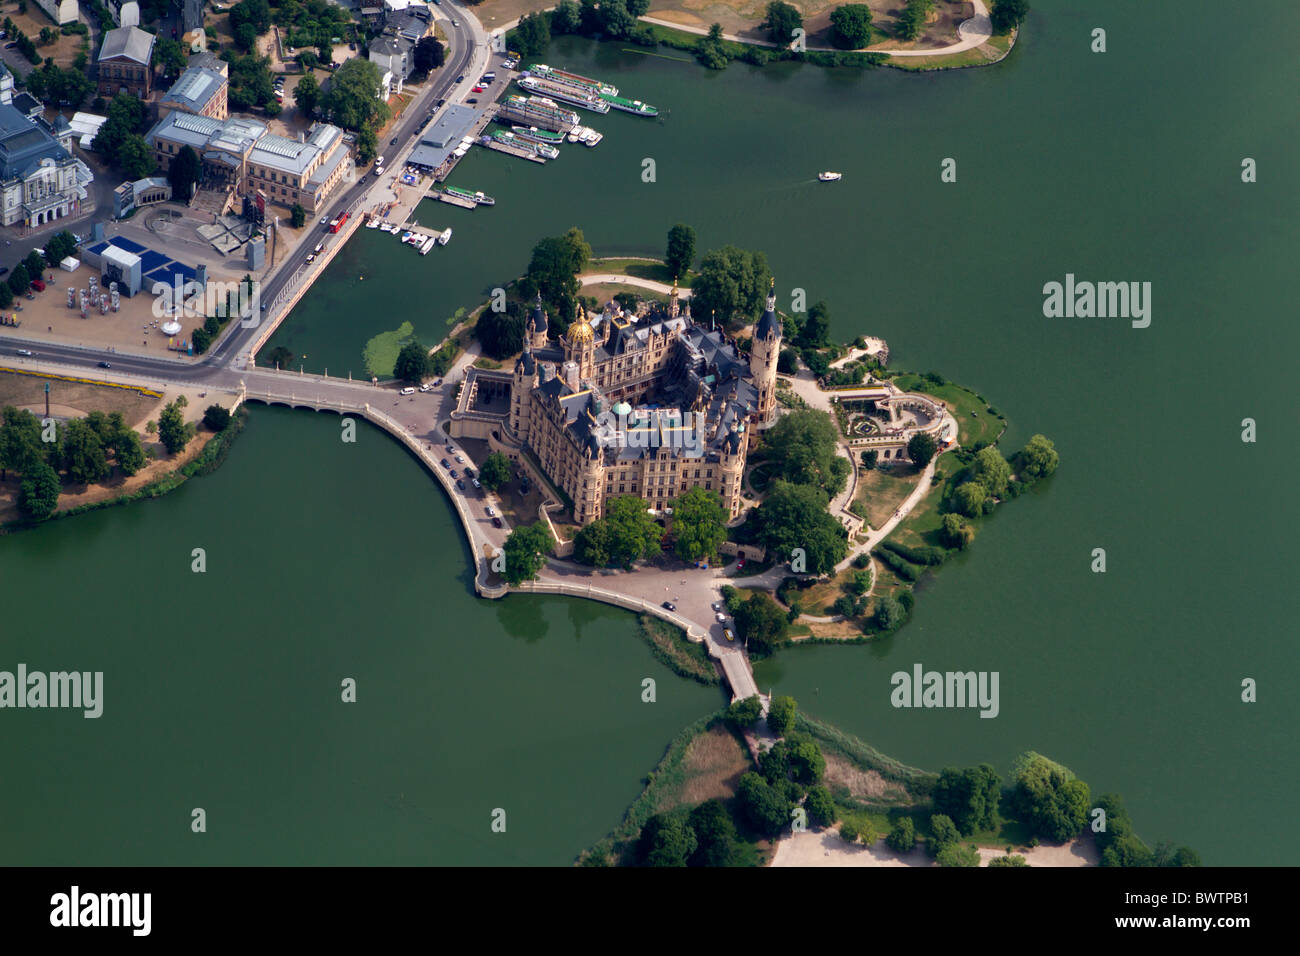 Aerial photograph of Schwerin Castle, Mecklenburg-Vorpommern, Germany Stock Photo